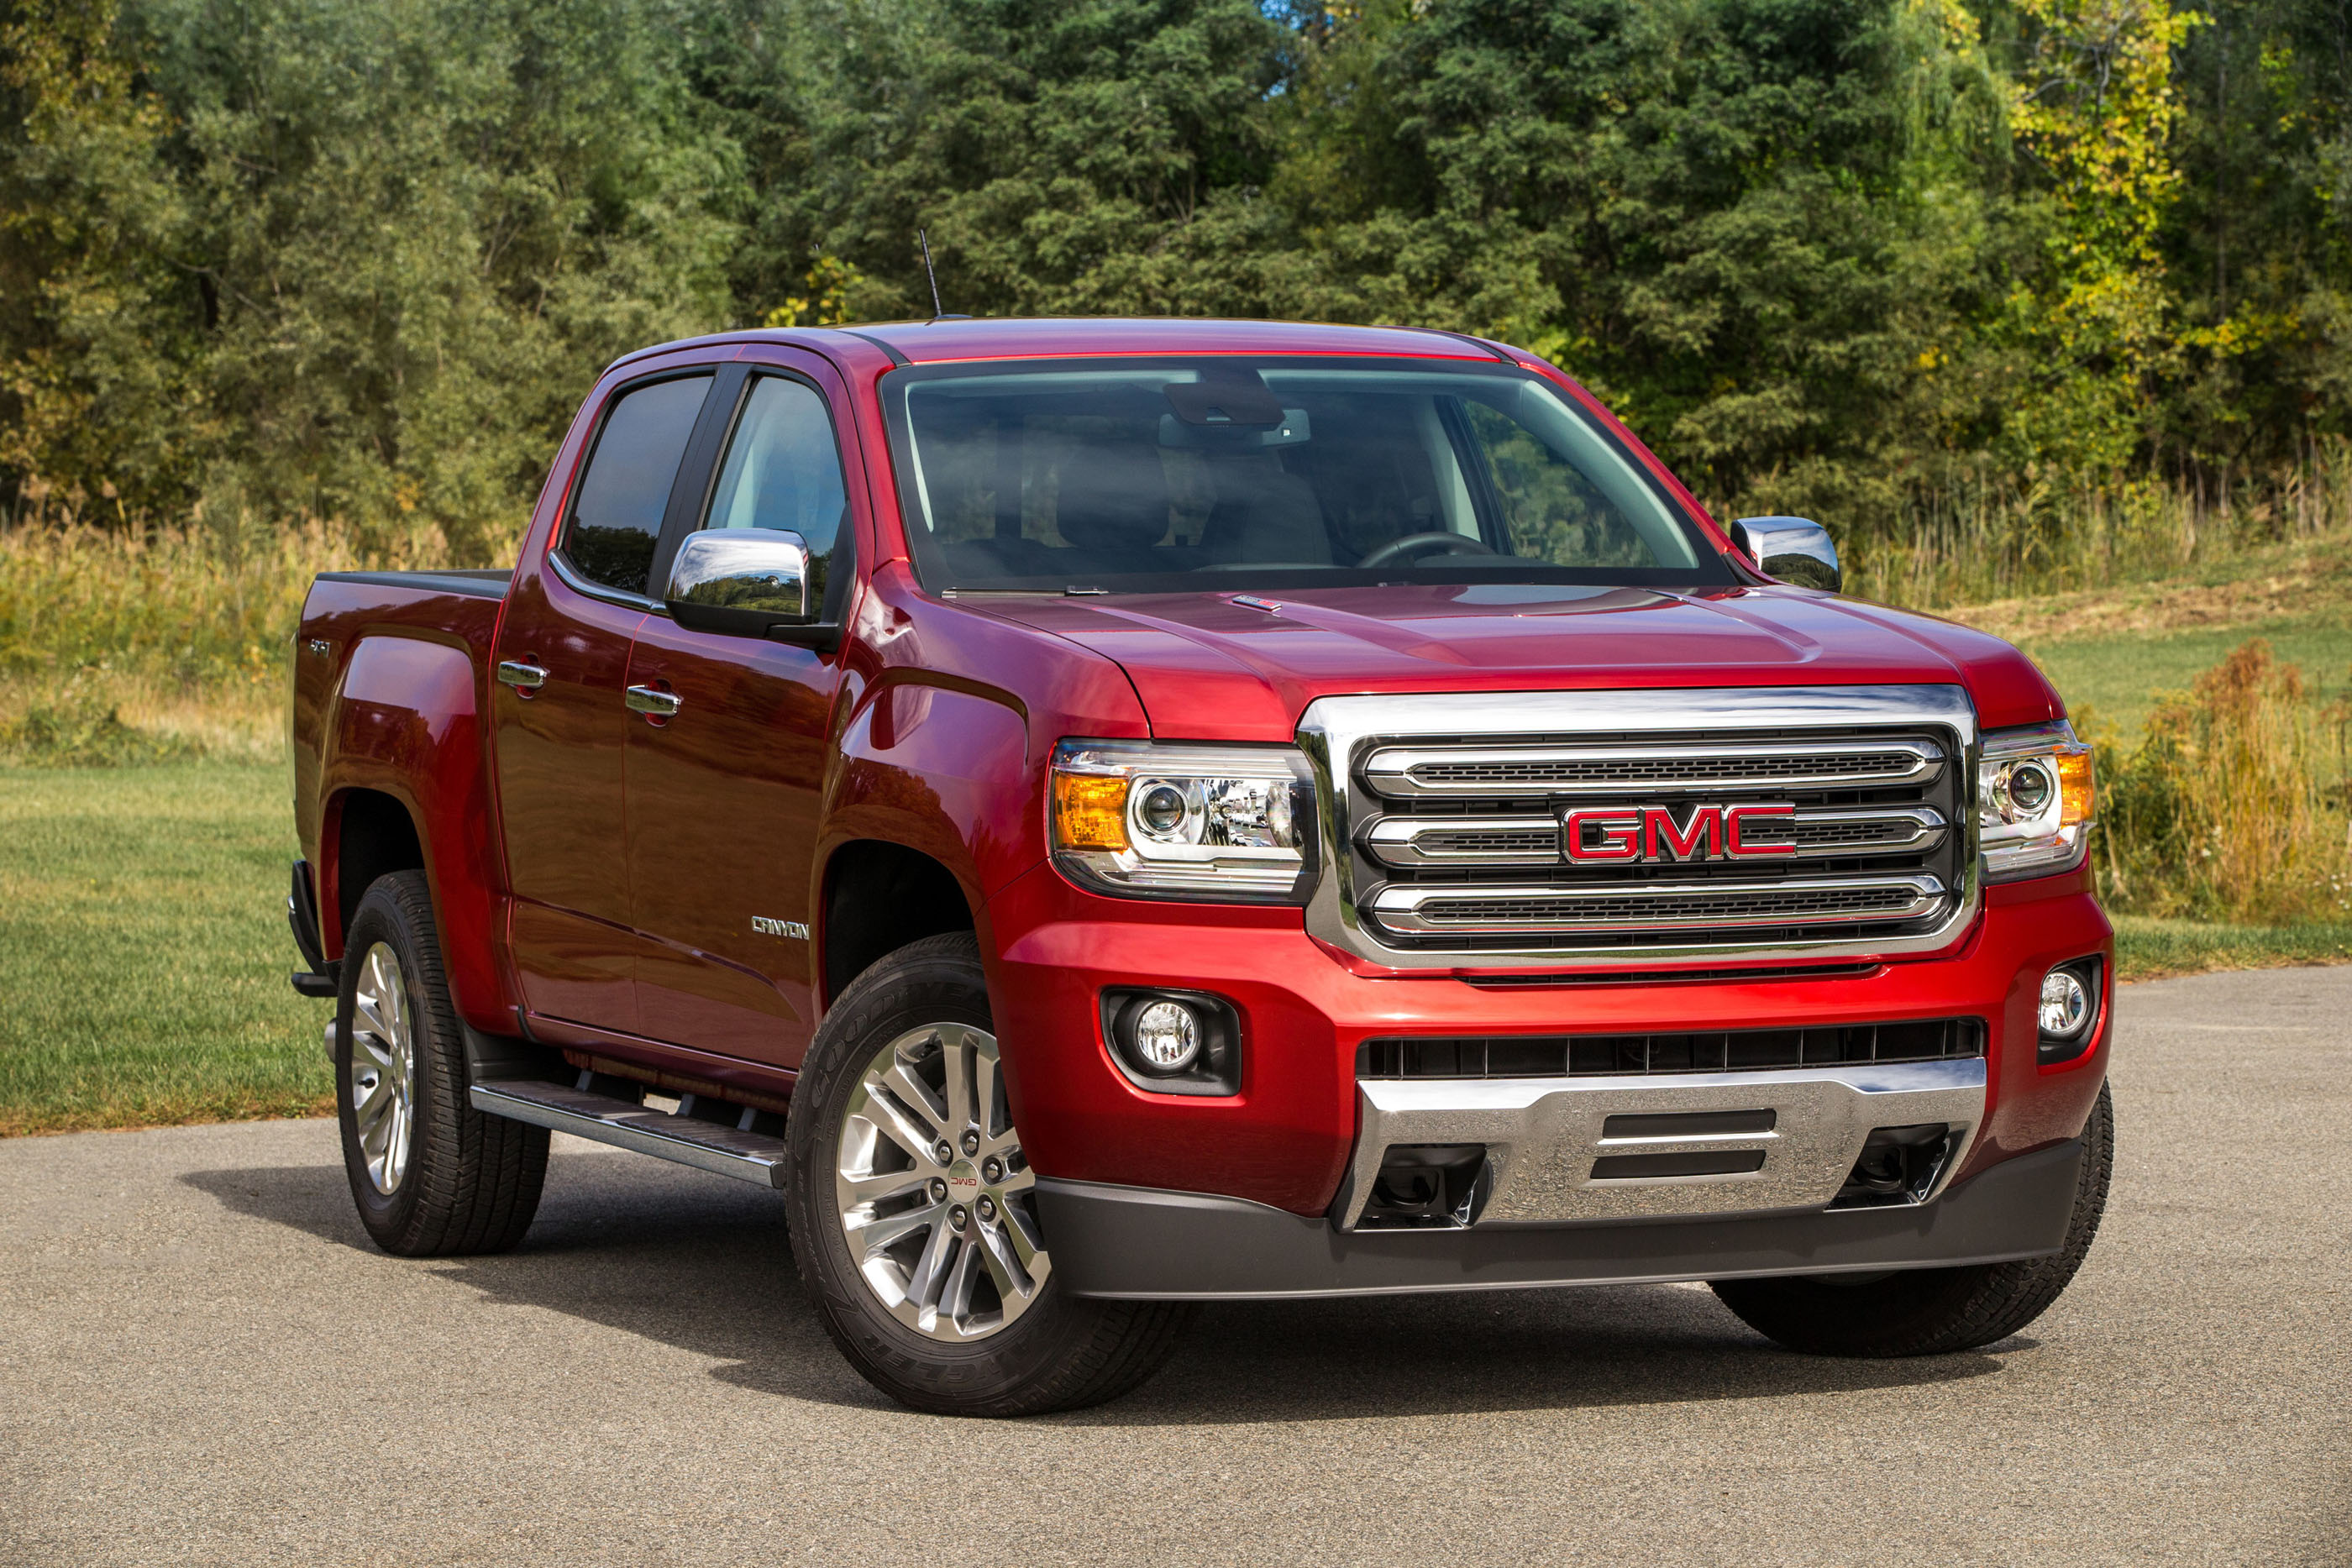 Kansas City Cars >> 2017 GMC Canyon Safety Review and Crash Test Ratings - The Car Connection